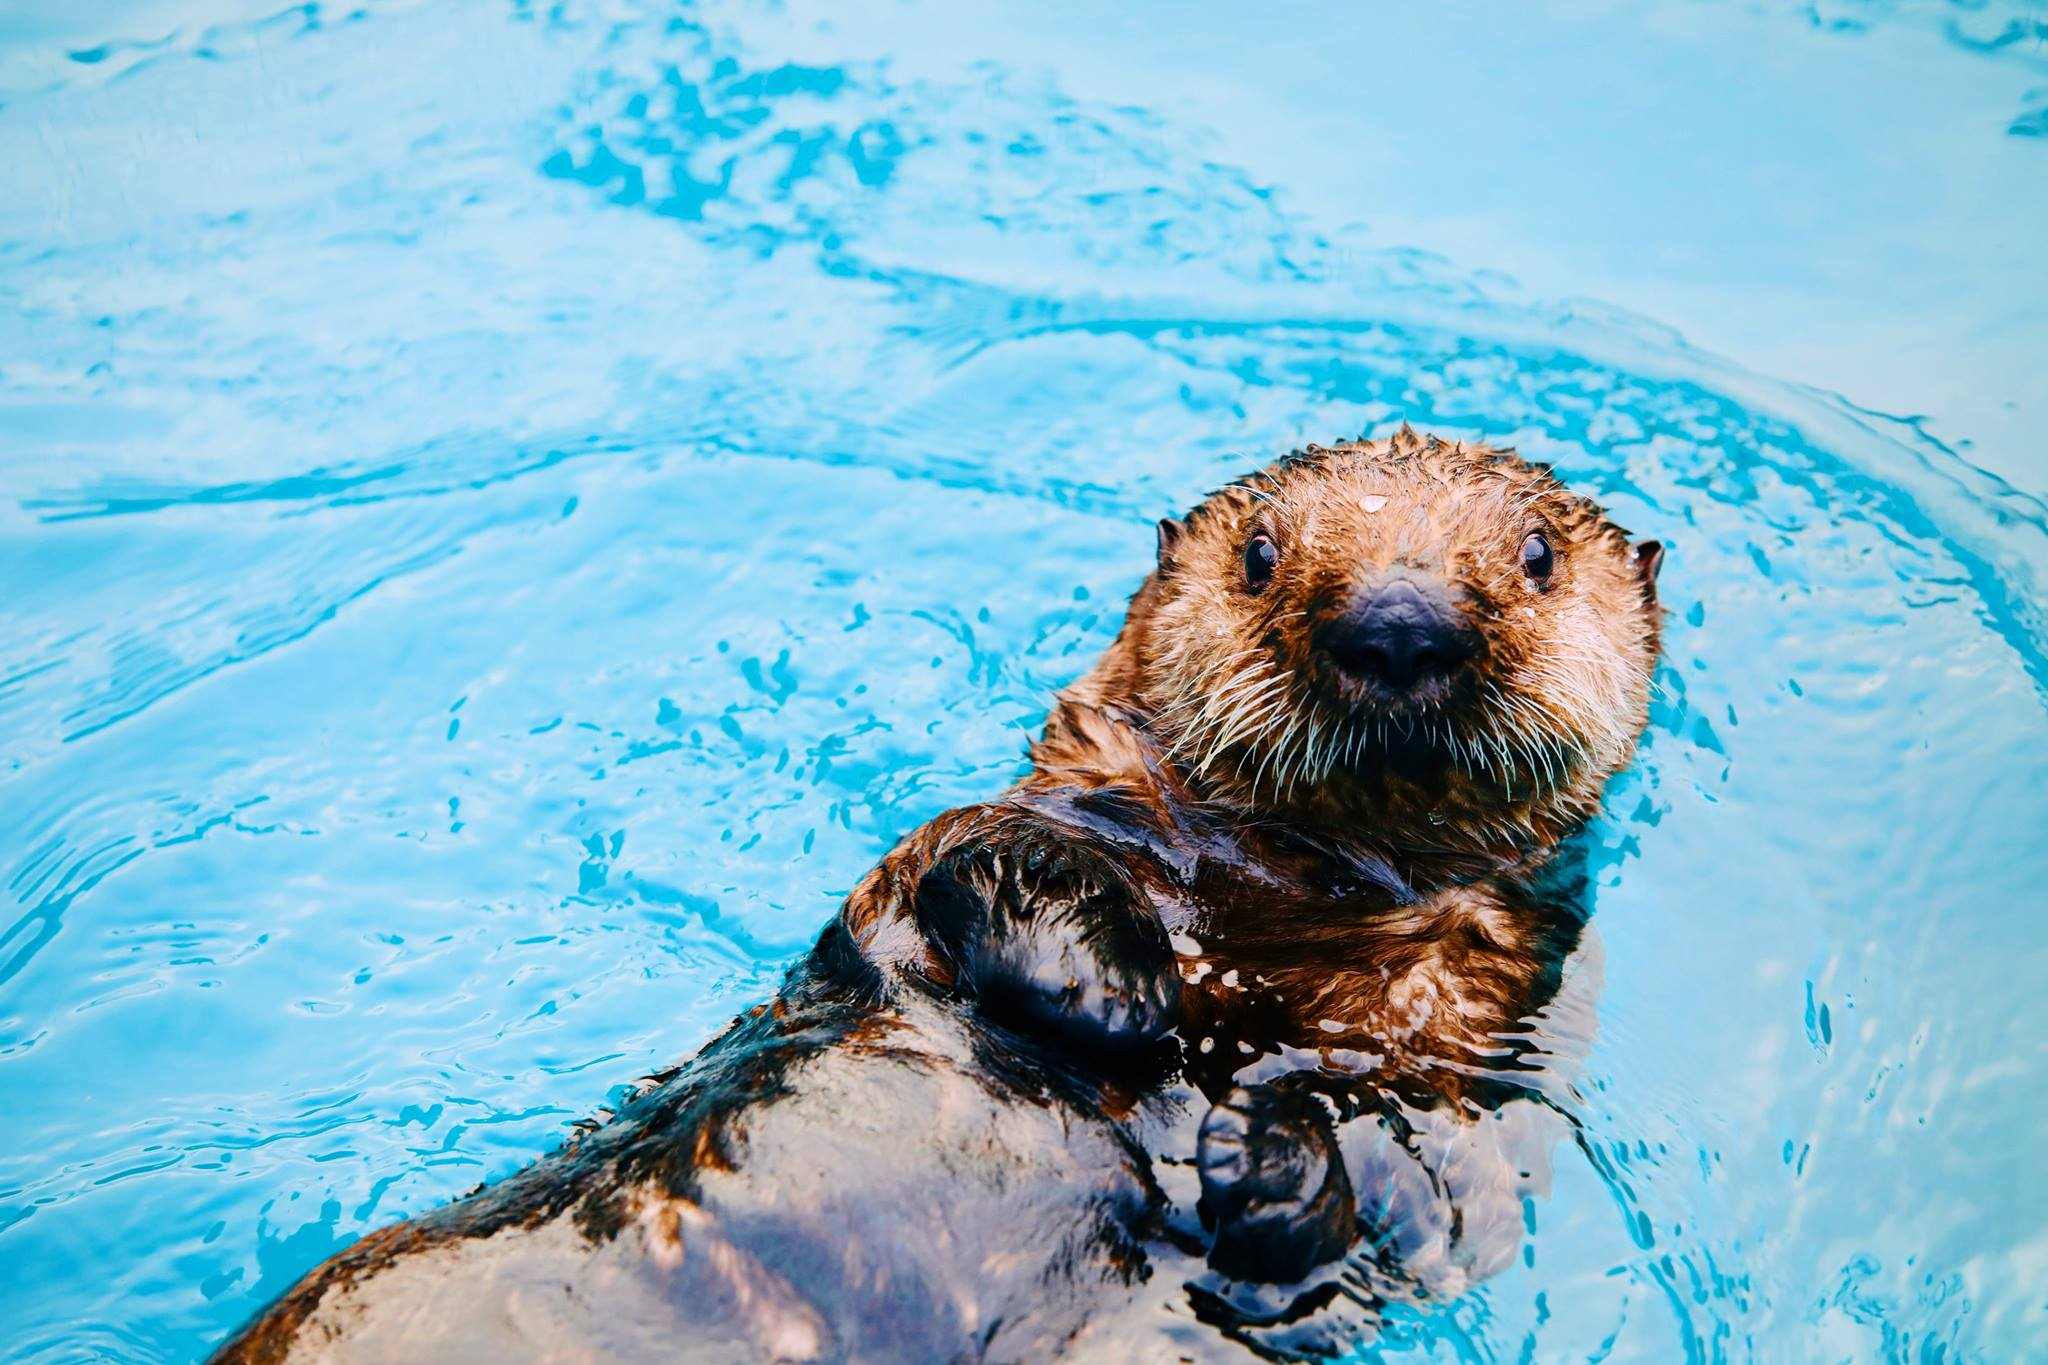 c4ffbdcb ... Sea Otter Experience [keywords] => [description] => [thumbnail] => 0  [template] => sub_page [accordion_id] => 0 [header_images] => [content] =>